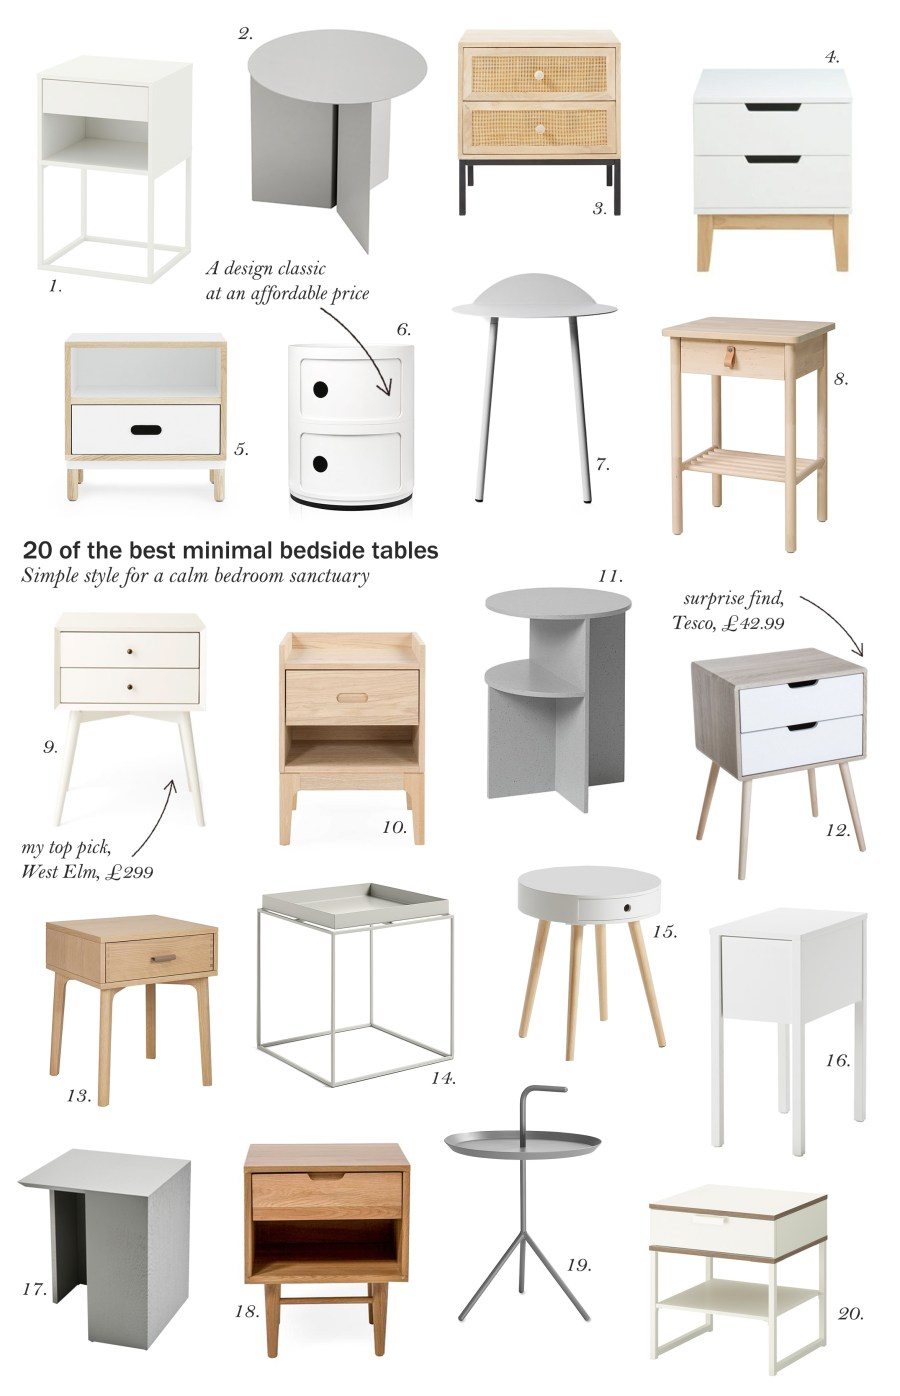 20 Of The Best Minimal Scandi Style Bedside Tables Cate